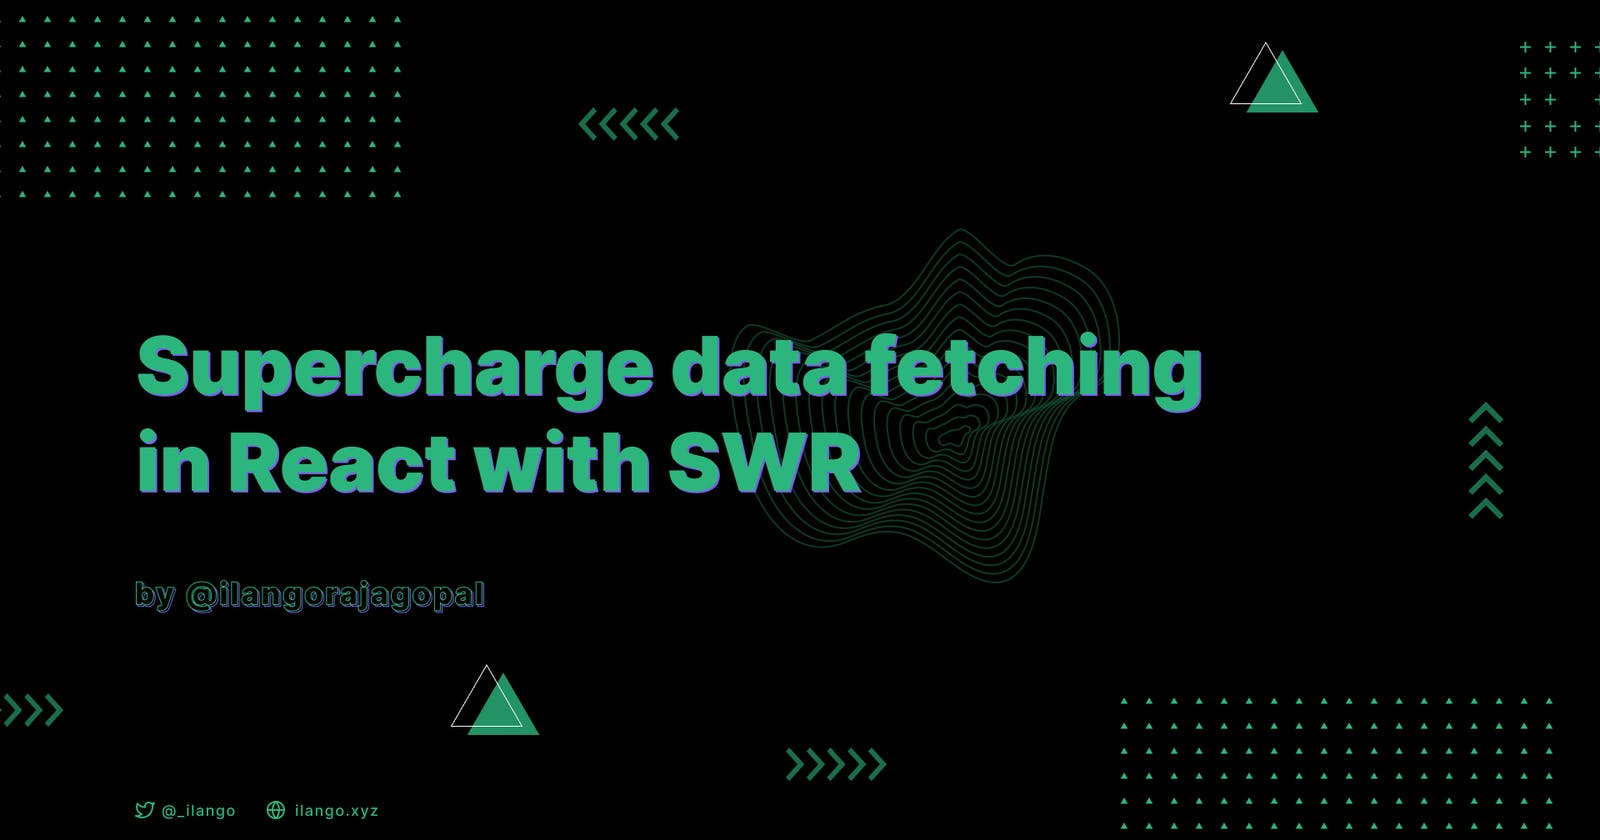 Supercharging data fetching in React with SWR